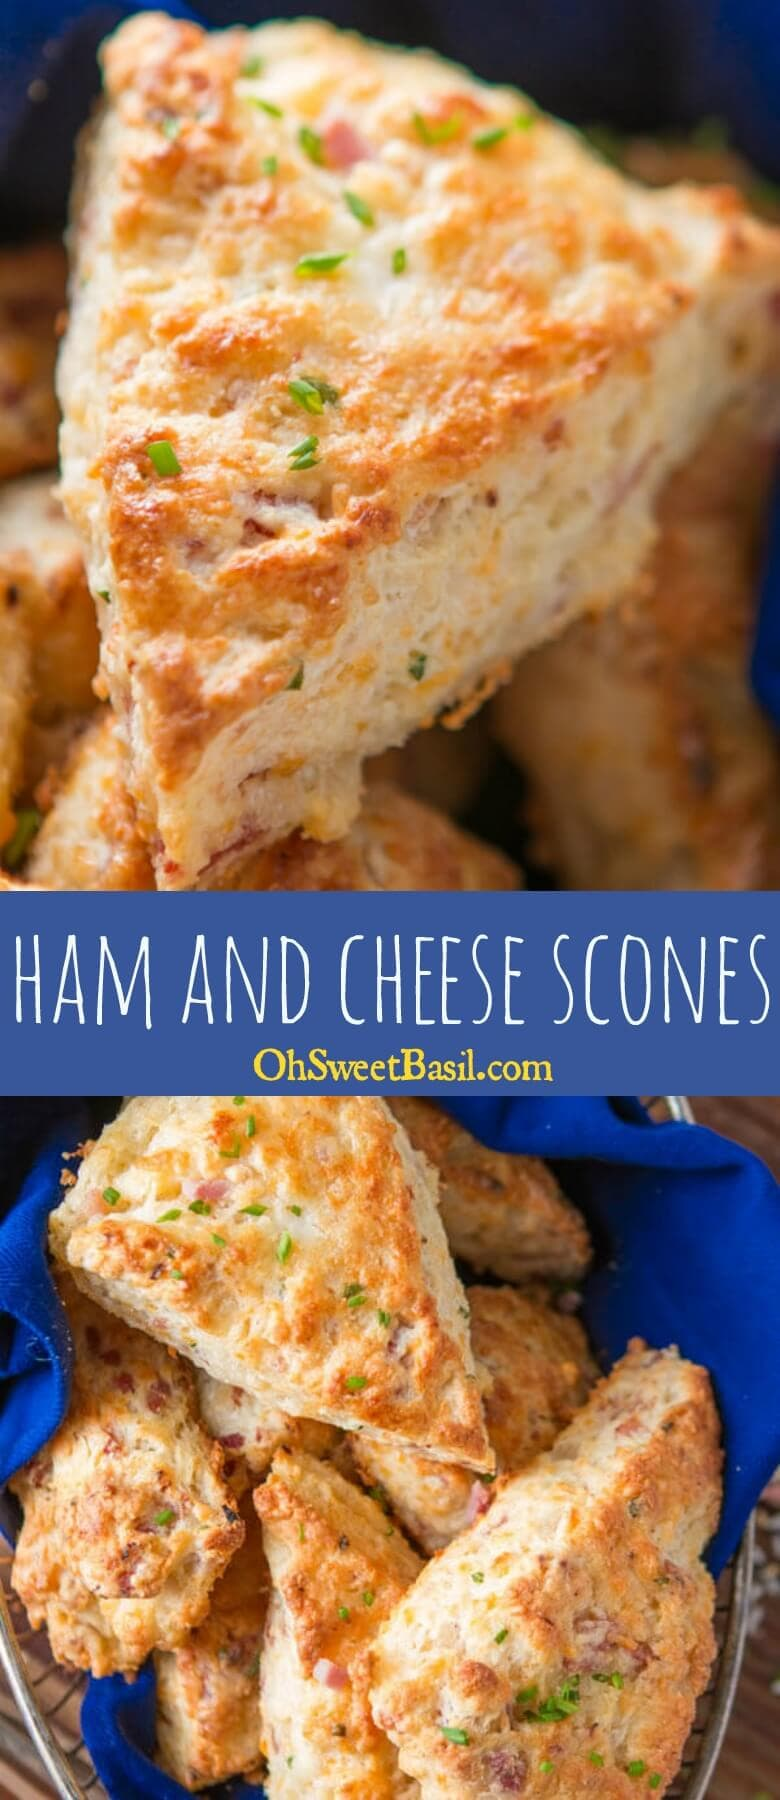 A few weeks ago I was making our apple pie scones and suddenly had the brilliant idea of making a savory version, easy ham and cheese scones!